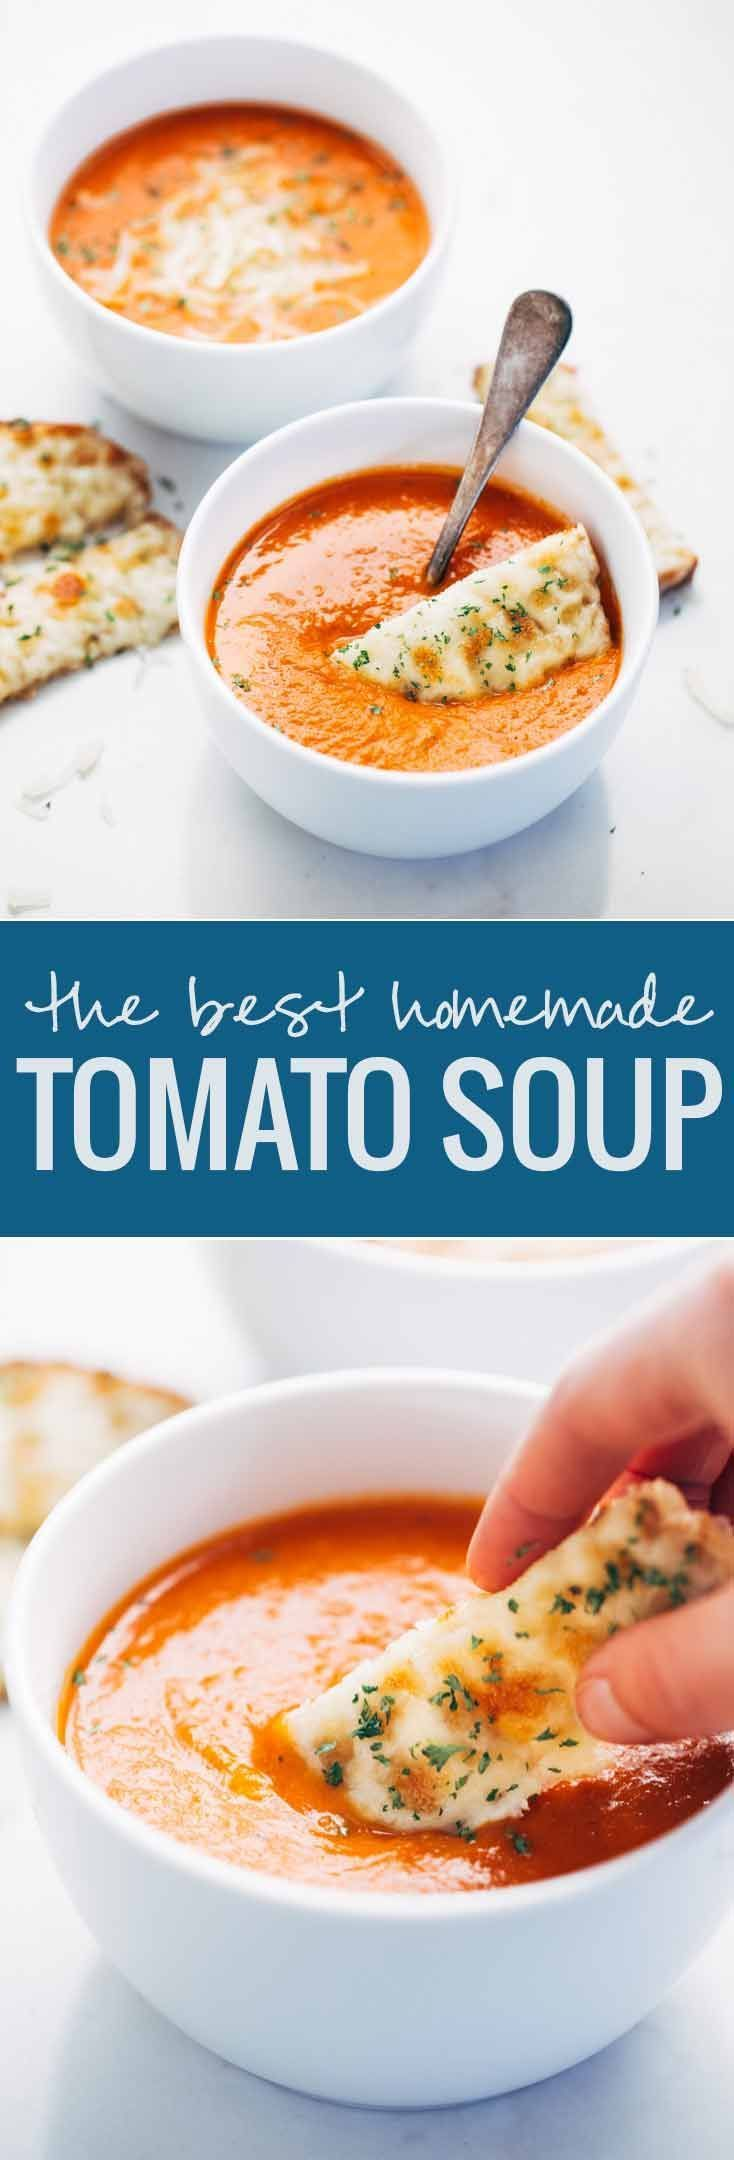 Simple Homemade Tomato Soup – Pinch of Yum